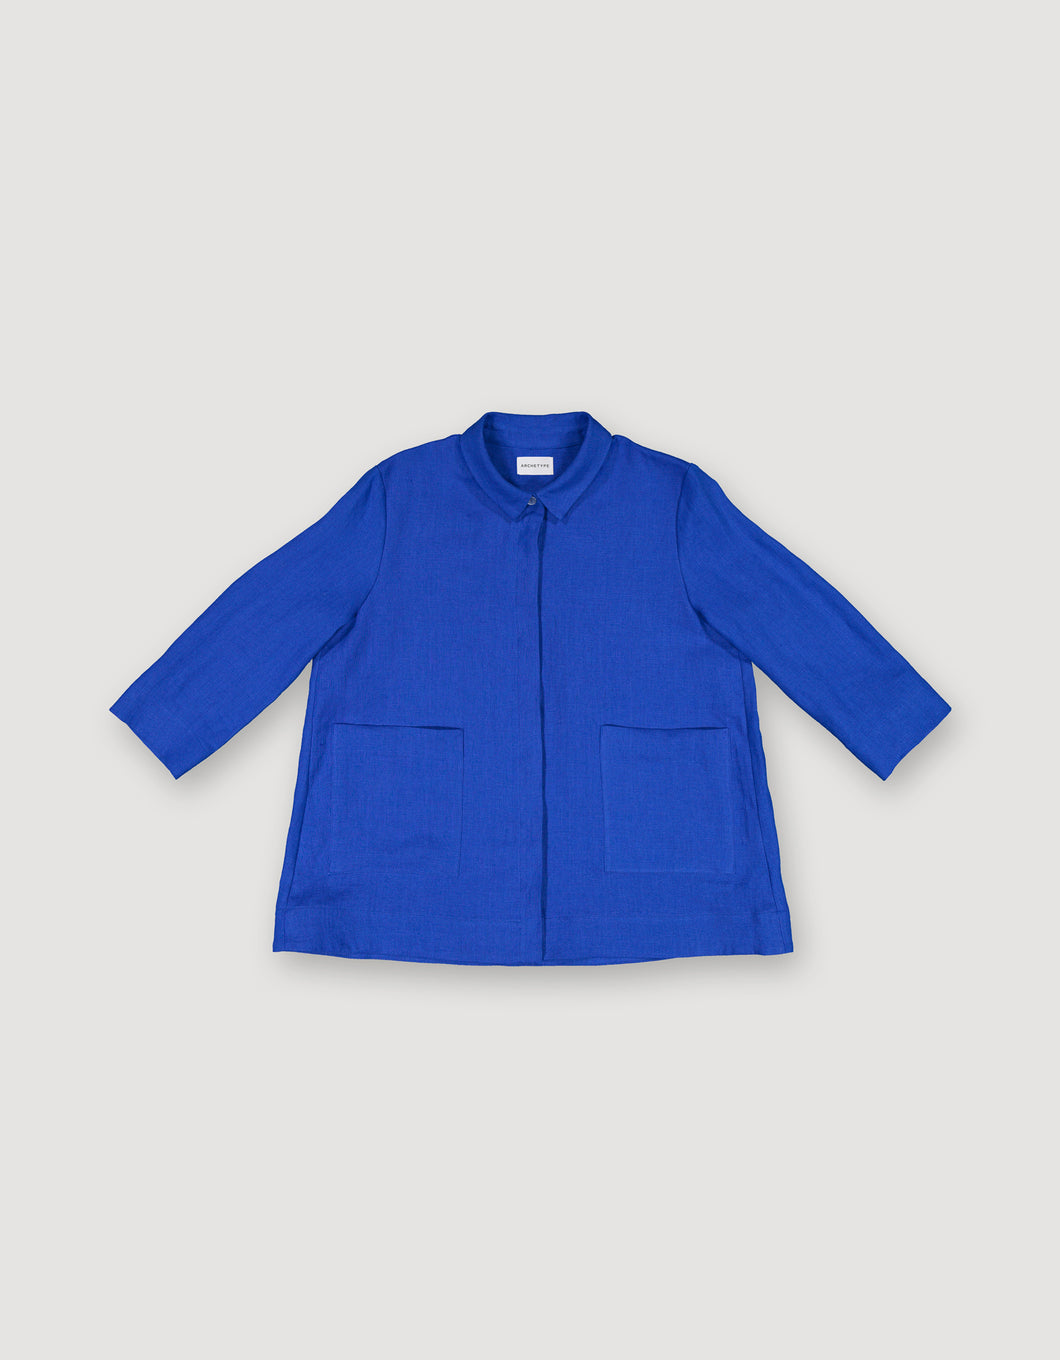 SHIRT JACKET (BLUE)